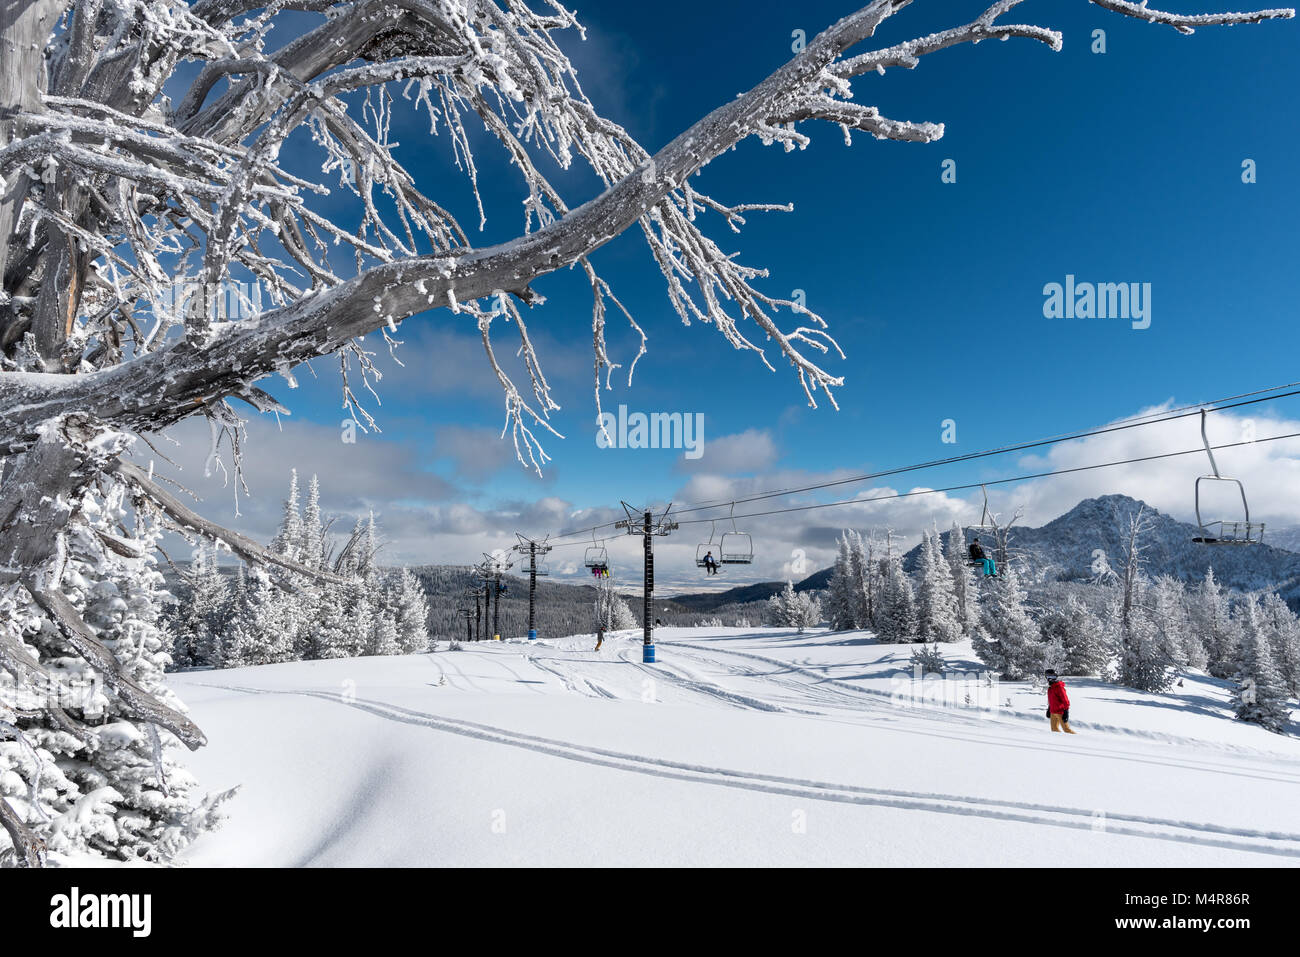 snowboarders and chairlift at anthony lakes mountain resort in stock